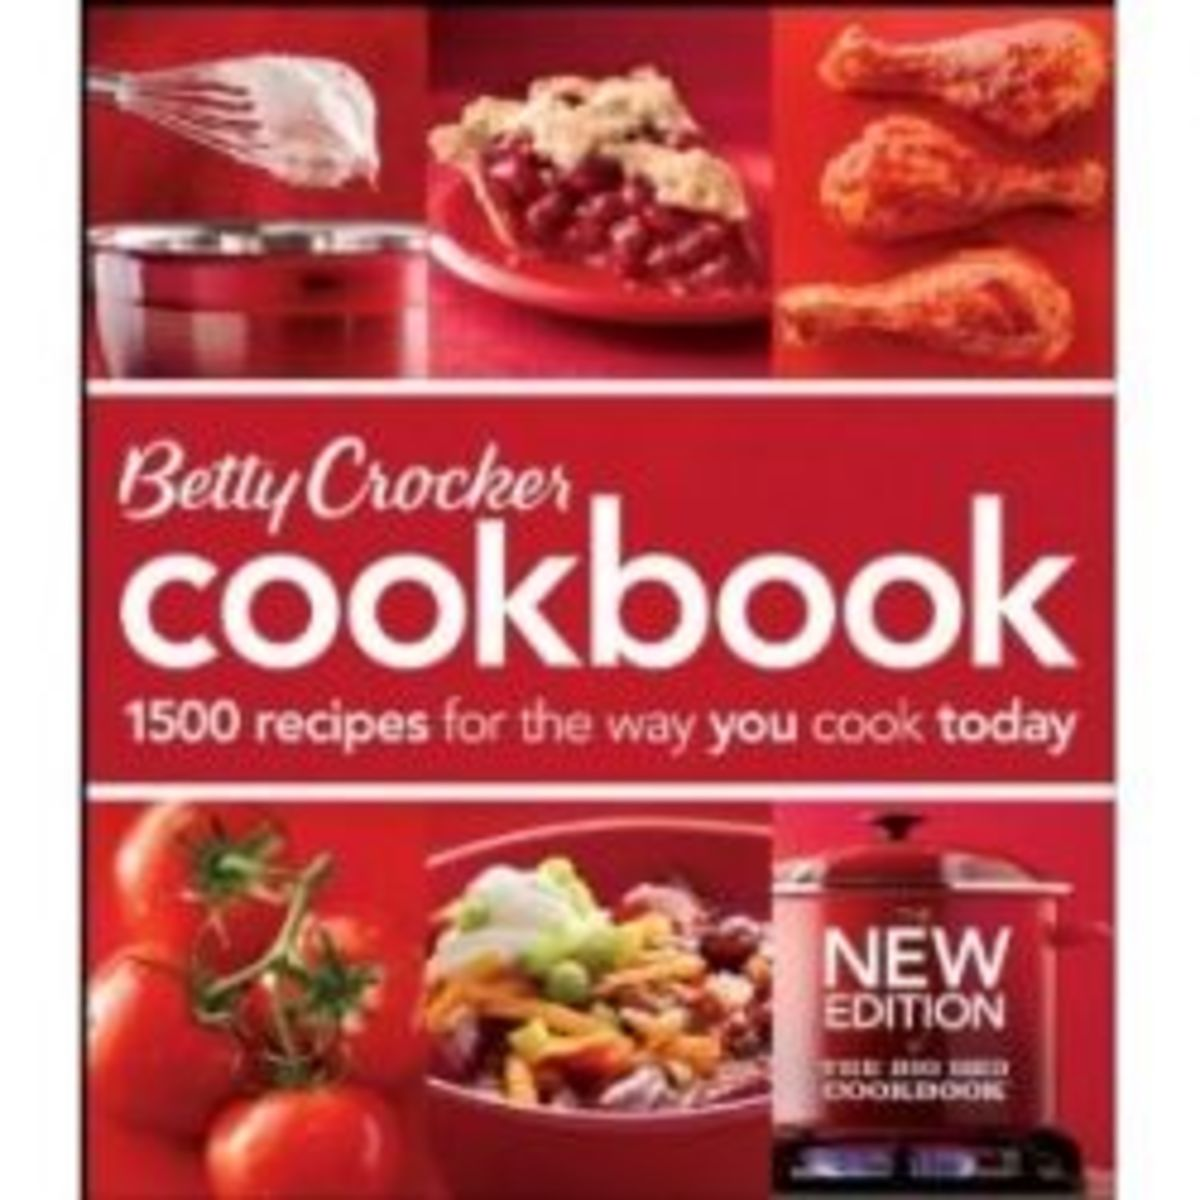 Betty Crocker Cookbook chocolate chip cookie recipe